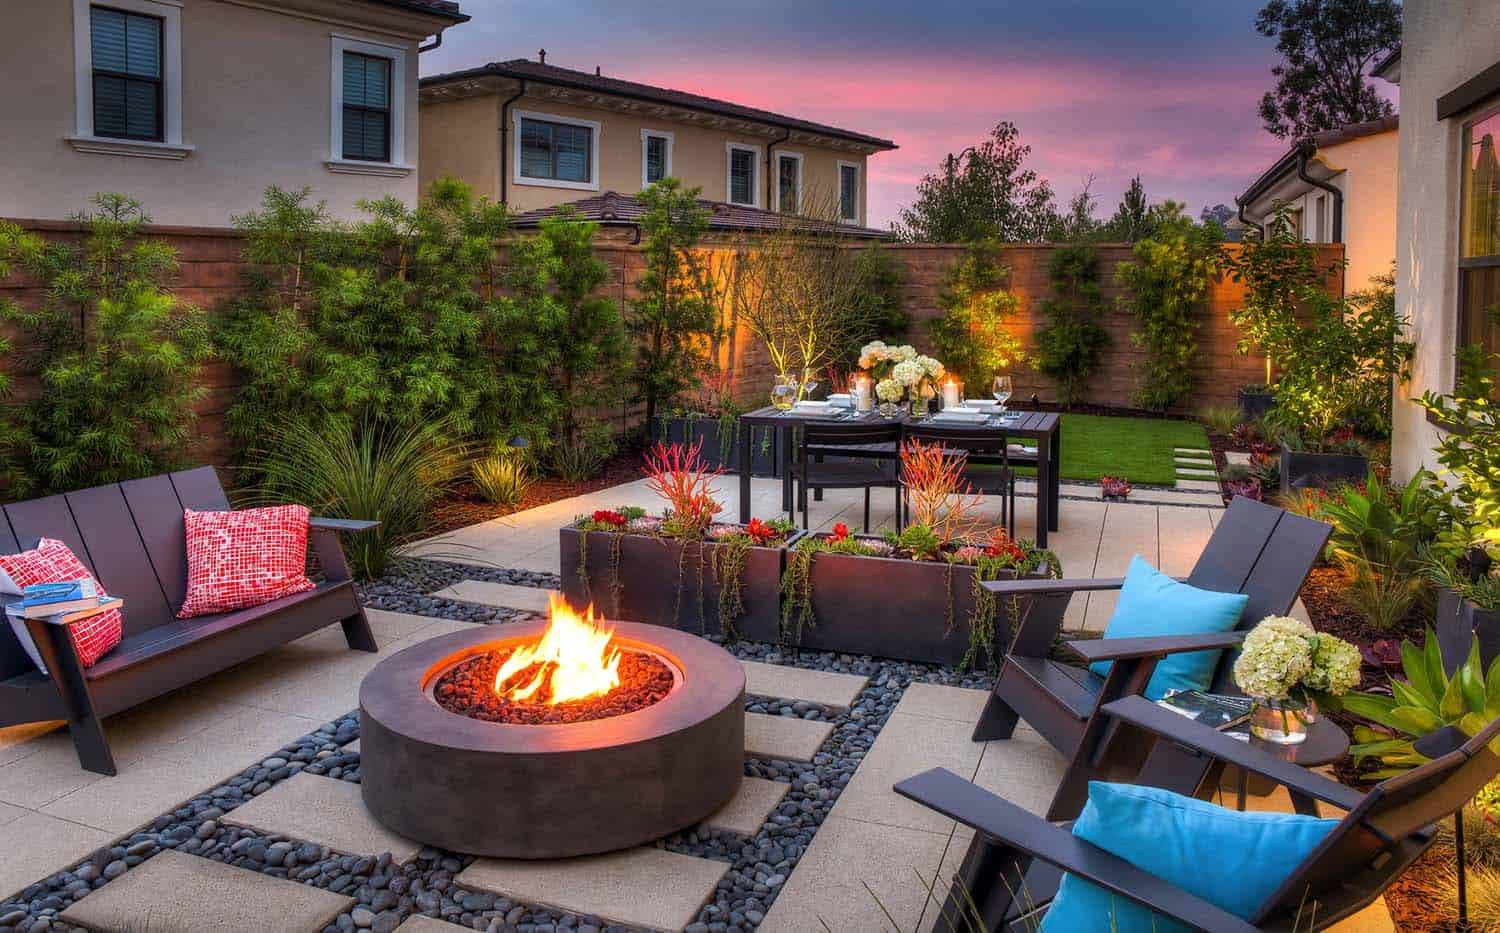 28 Inspiring Fire Pit Ideas To Create A Fabulous Backyard ... on Backyard Patio Designs With Fire Pit  id=17396